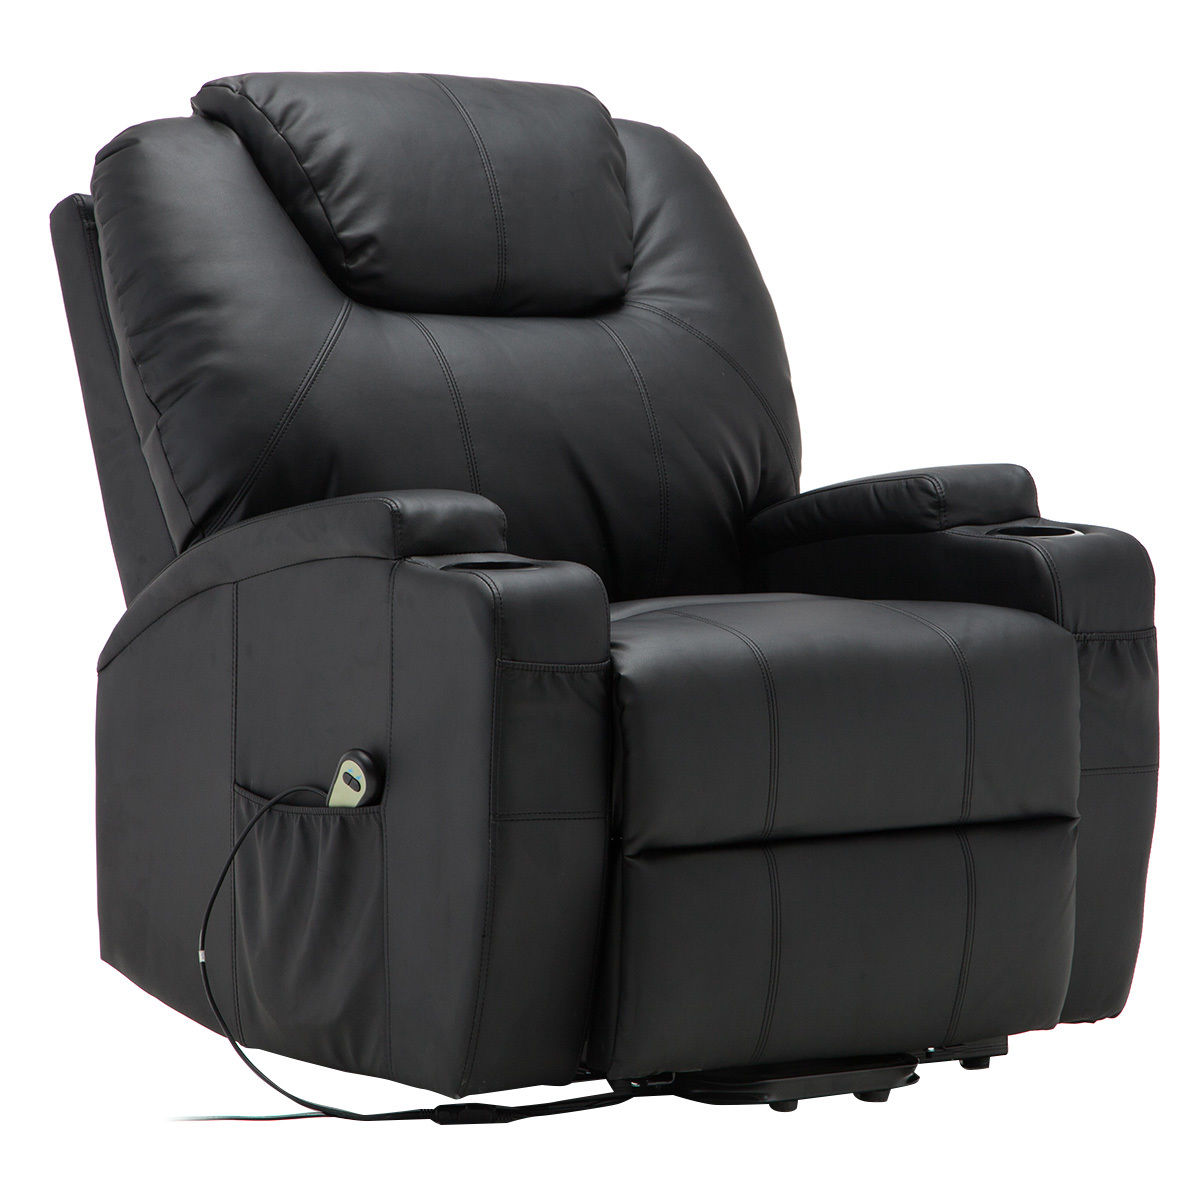 Giantex Electric Lift Recliner Chair Heated Mage Sofa Lounge With Remote Control Chairs Modern Hw53991 In Living Room Sofas From